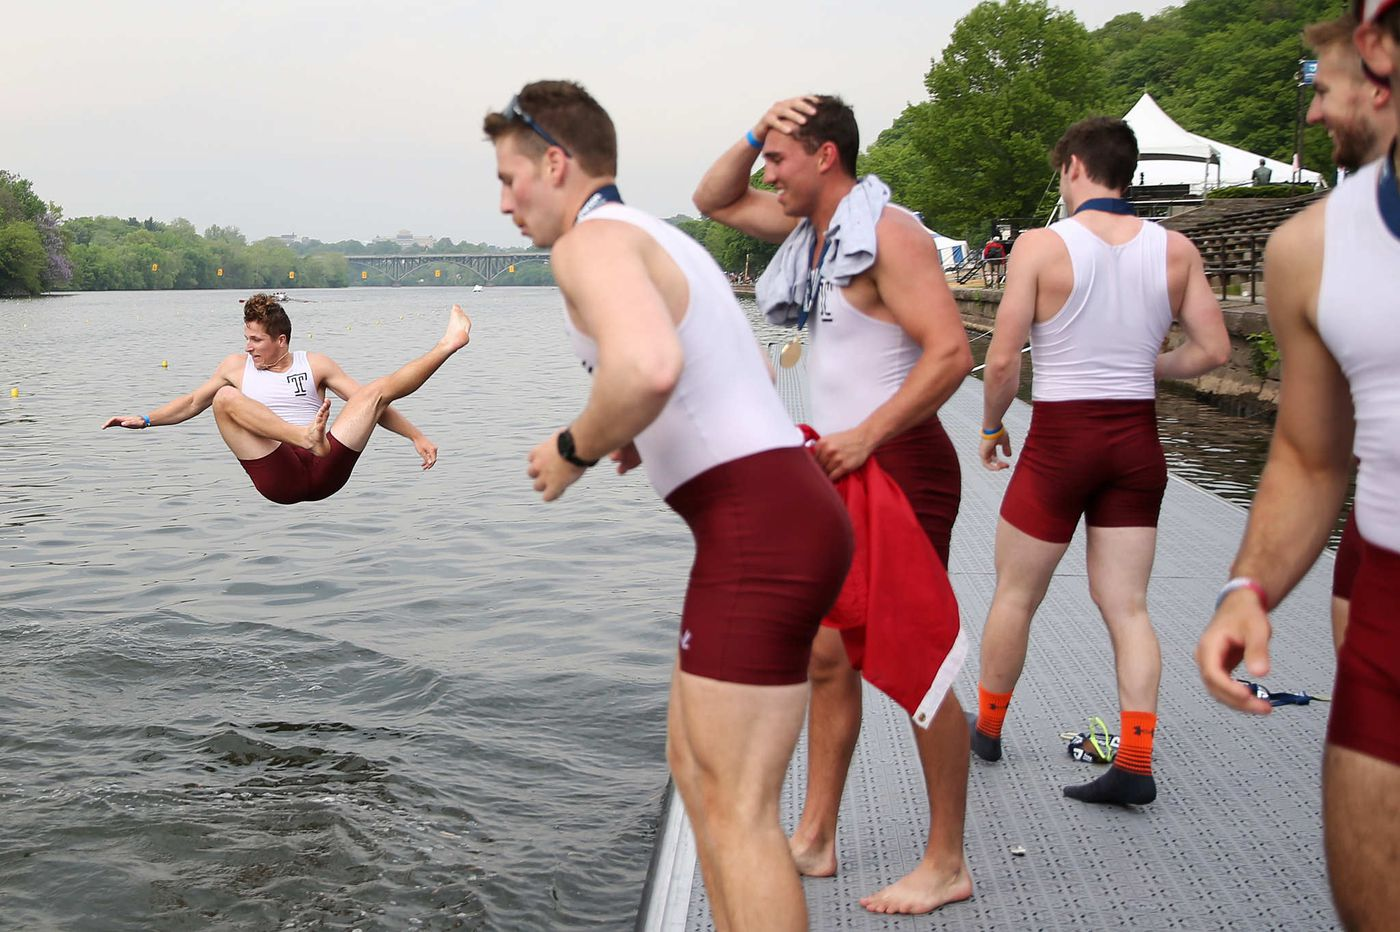 Jefferson Dad Vail Regatta: What you need to know